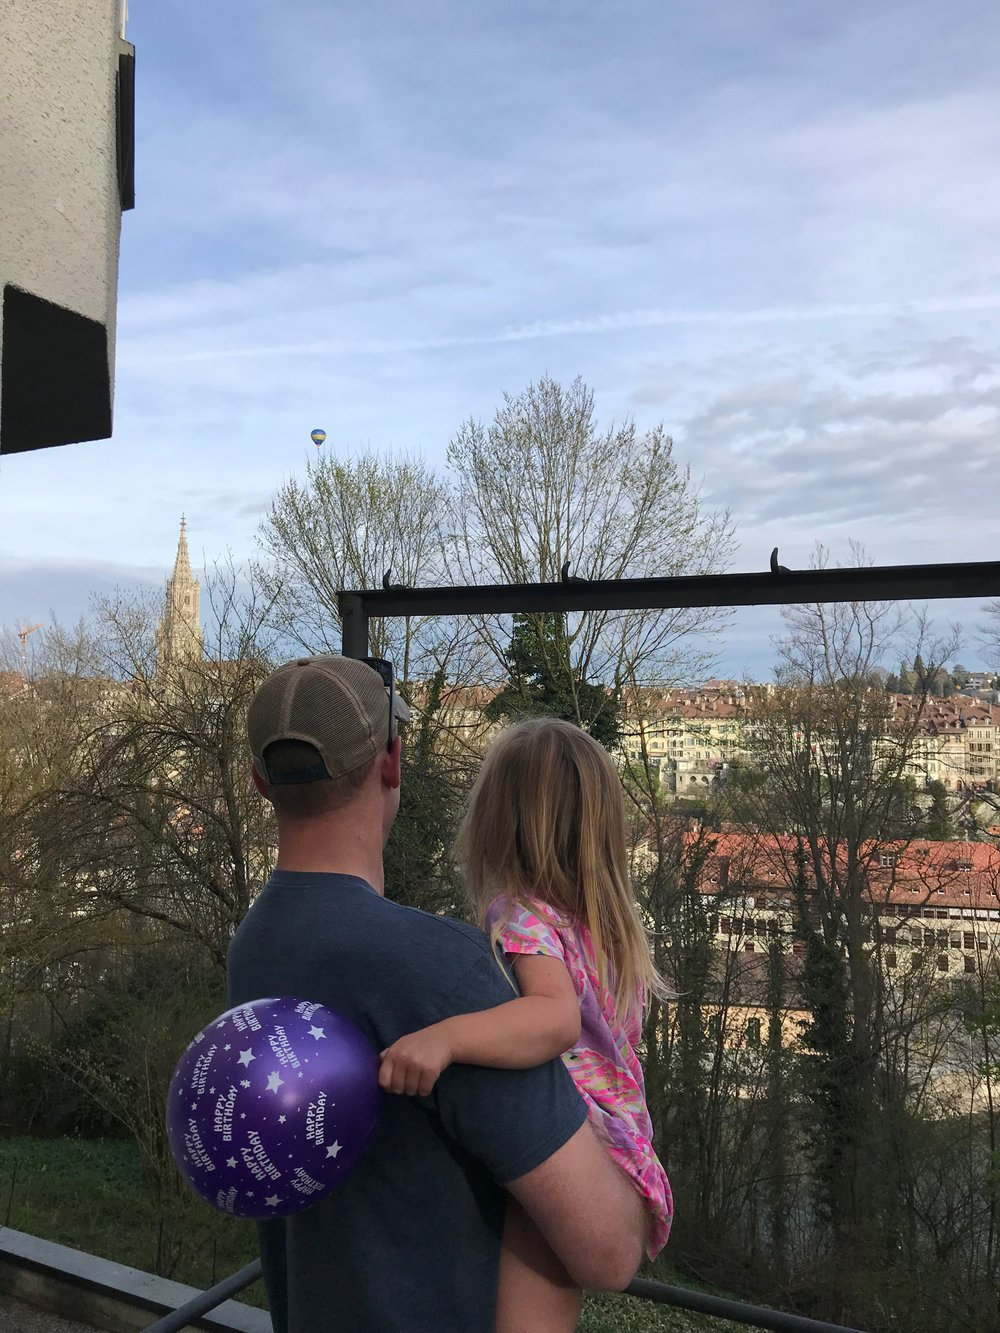 charletta turned three while we were in bern.  The hosts brought her a cake and balloons to celebrate.  This is  the view from our airbnb the morning of her birthday and hot airballoons were flying over!